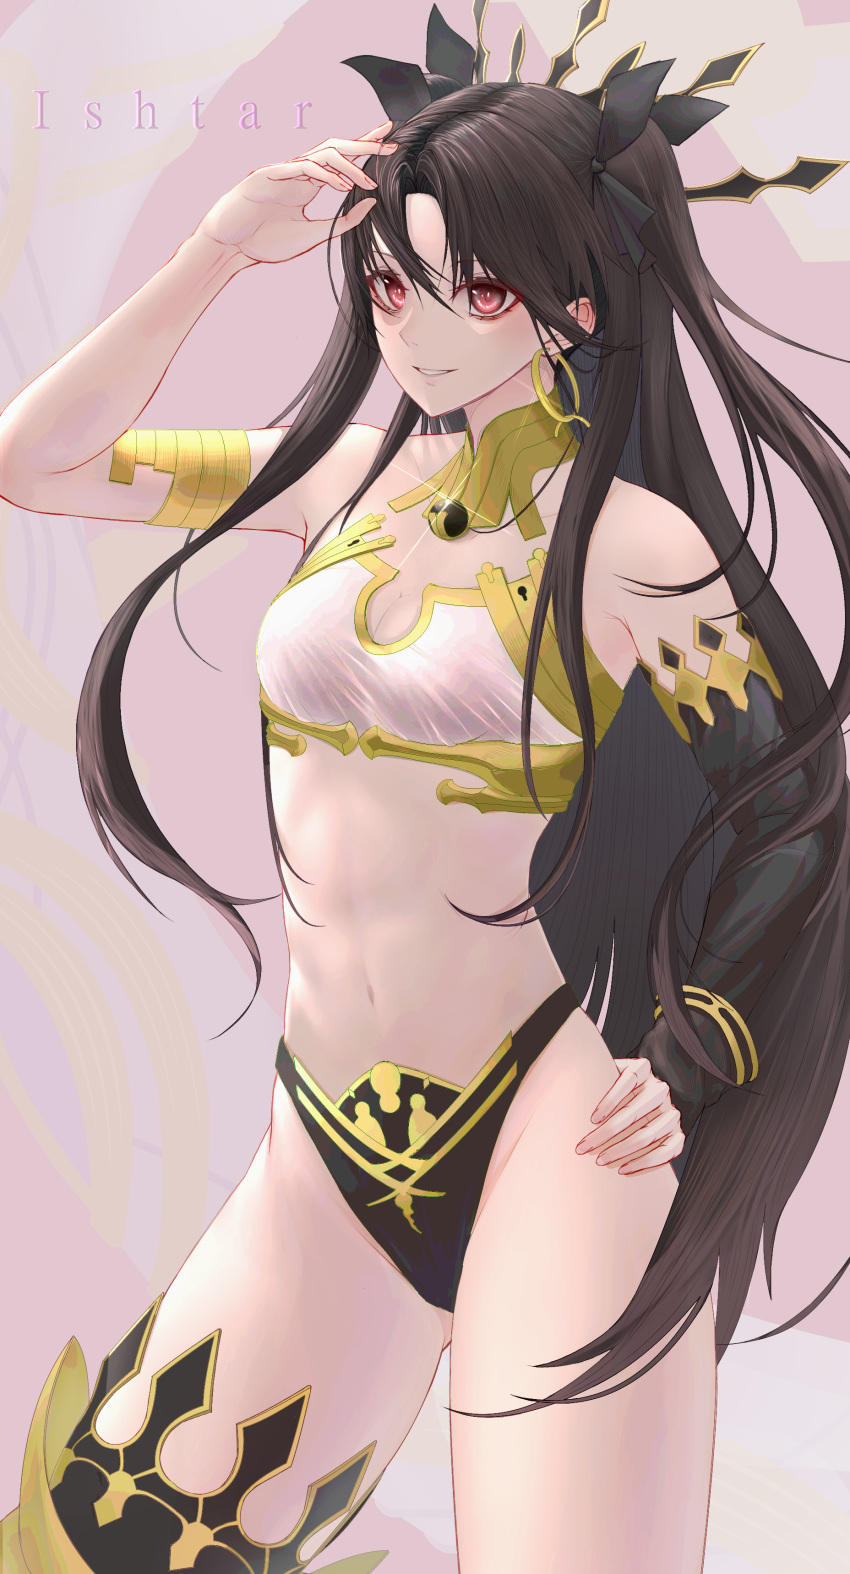 1girl absurdres armlet asymmetrical_legwear asymmetrical_sleeves bangs bare_shoulders black_hair blush breasts character_name commentary crown detached_collar earrings fate/grand_order fate_(series) hair_ribbon highres hoop_earrings ishtar_(fate)_(all) ishtar_(fate/grand_order) jewelry long_hair looking_at_viewer medium_breasts navel neck_ring parted_bangs red_eyes ribbon single_thighhigh smile solo tenpai thigh-highs two_side_up